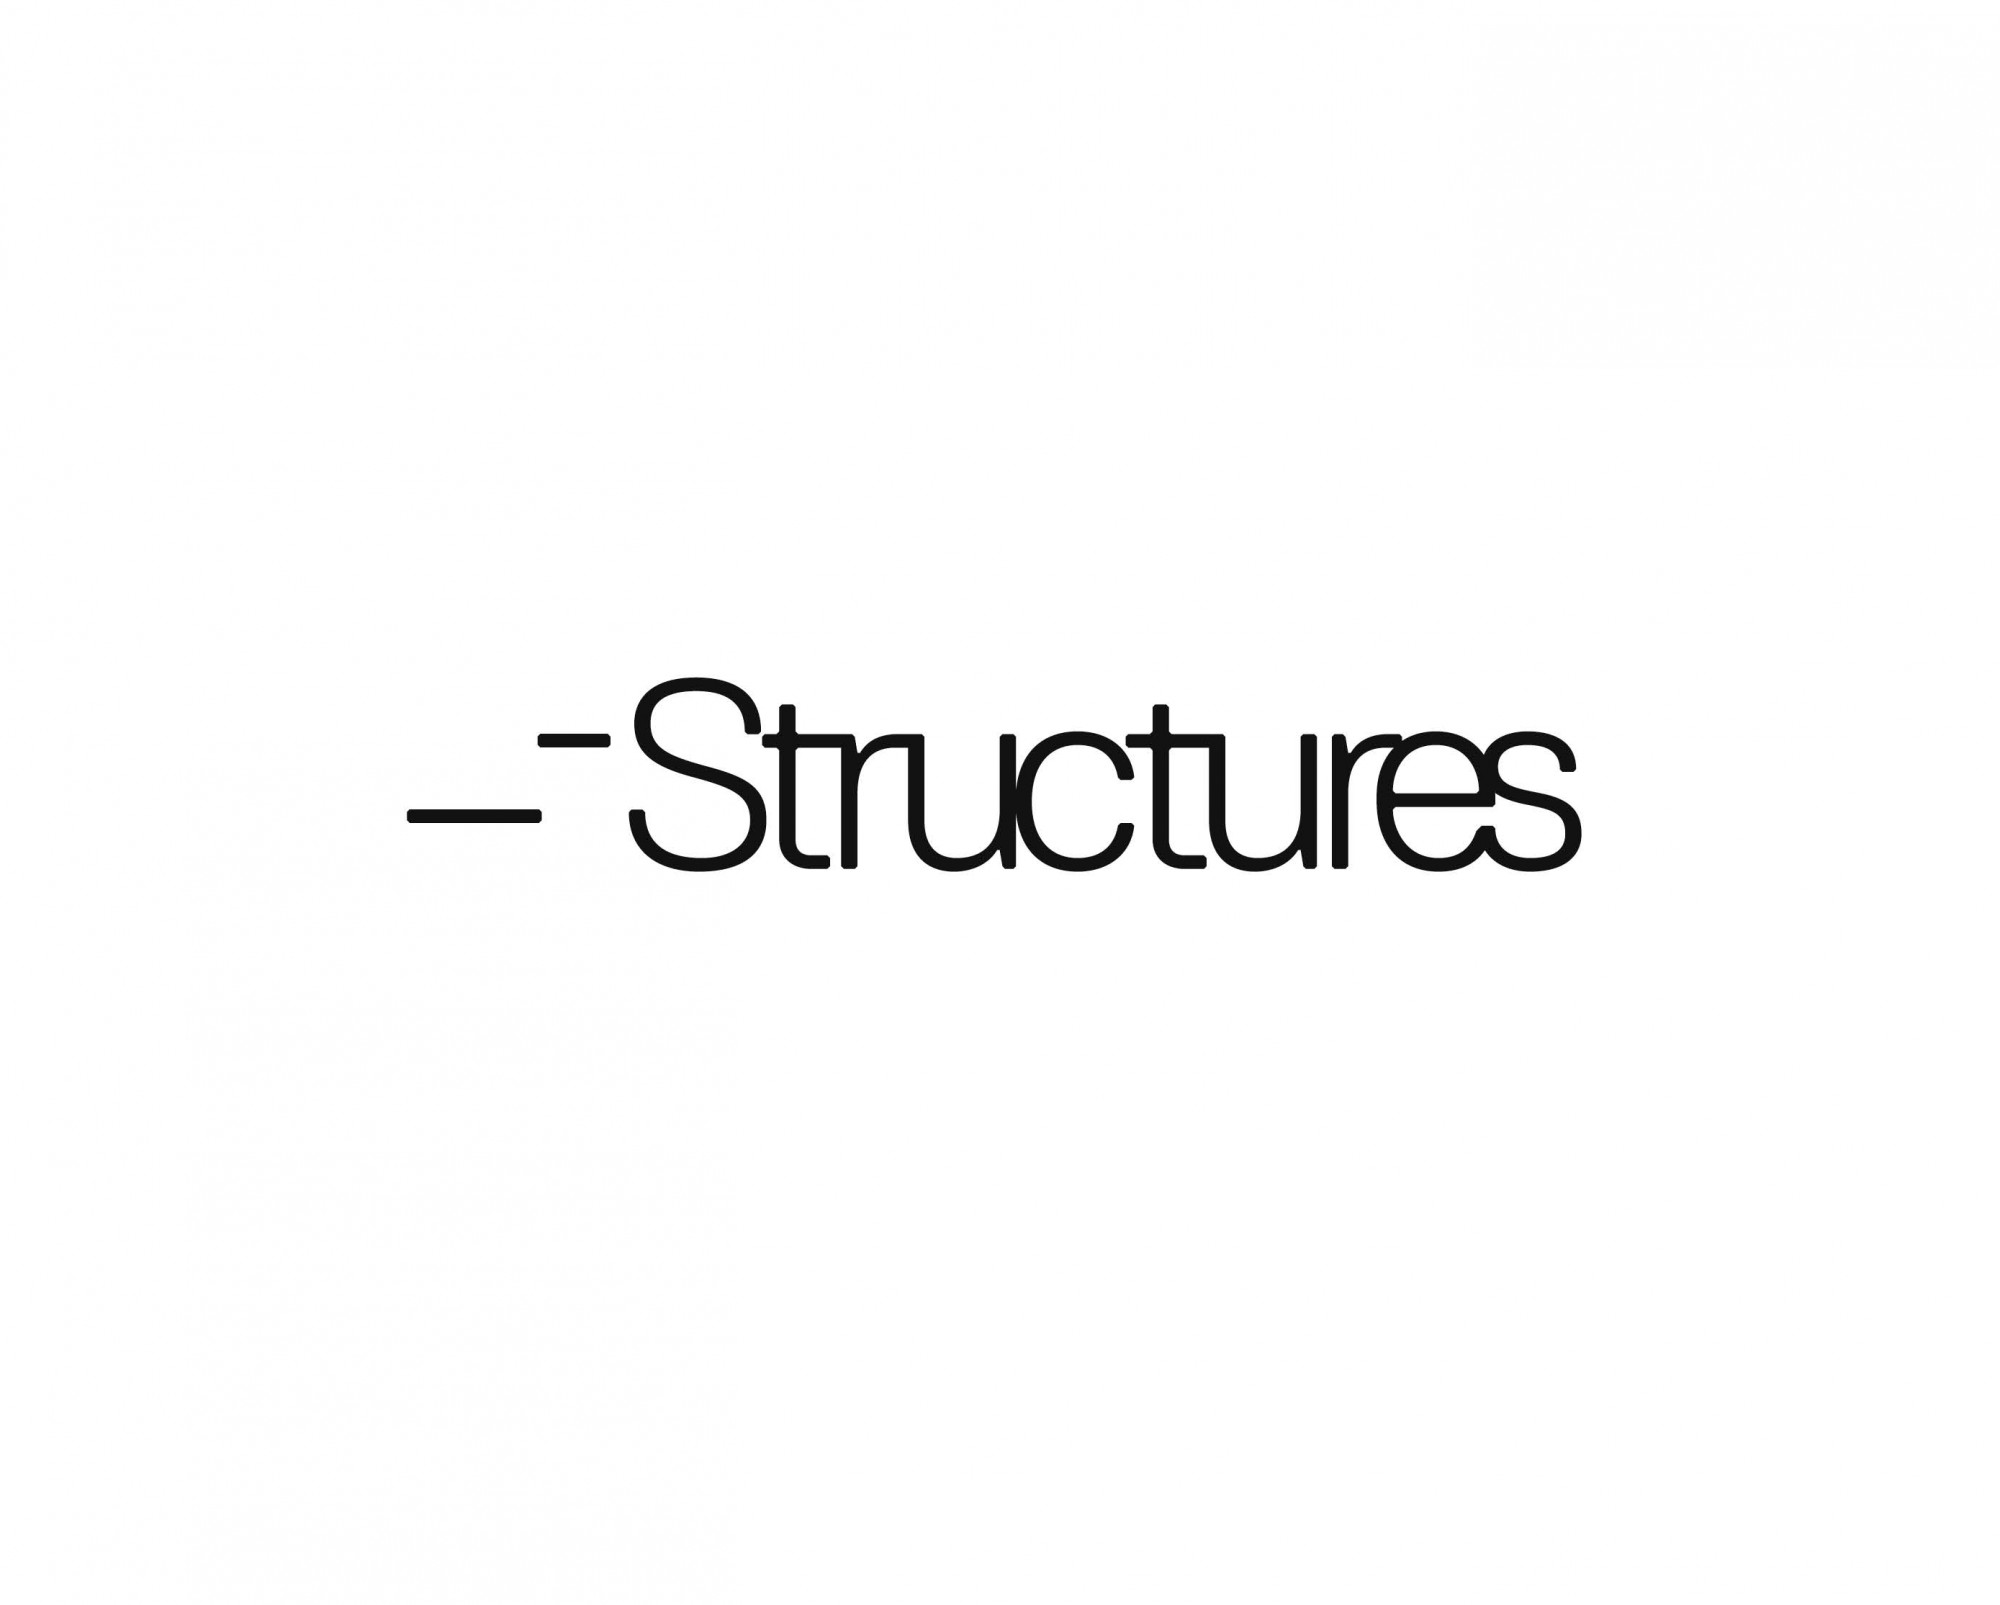 structures_logo